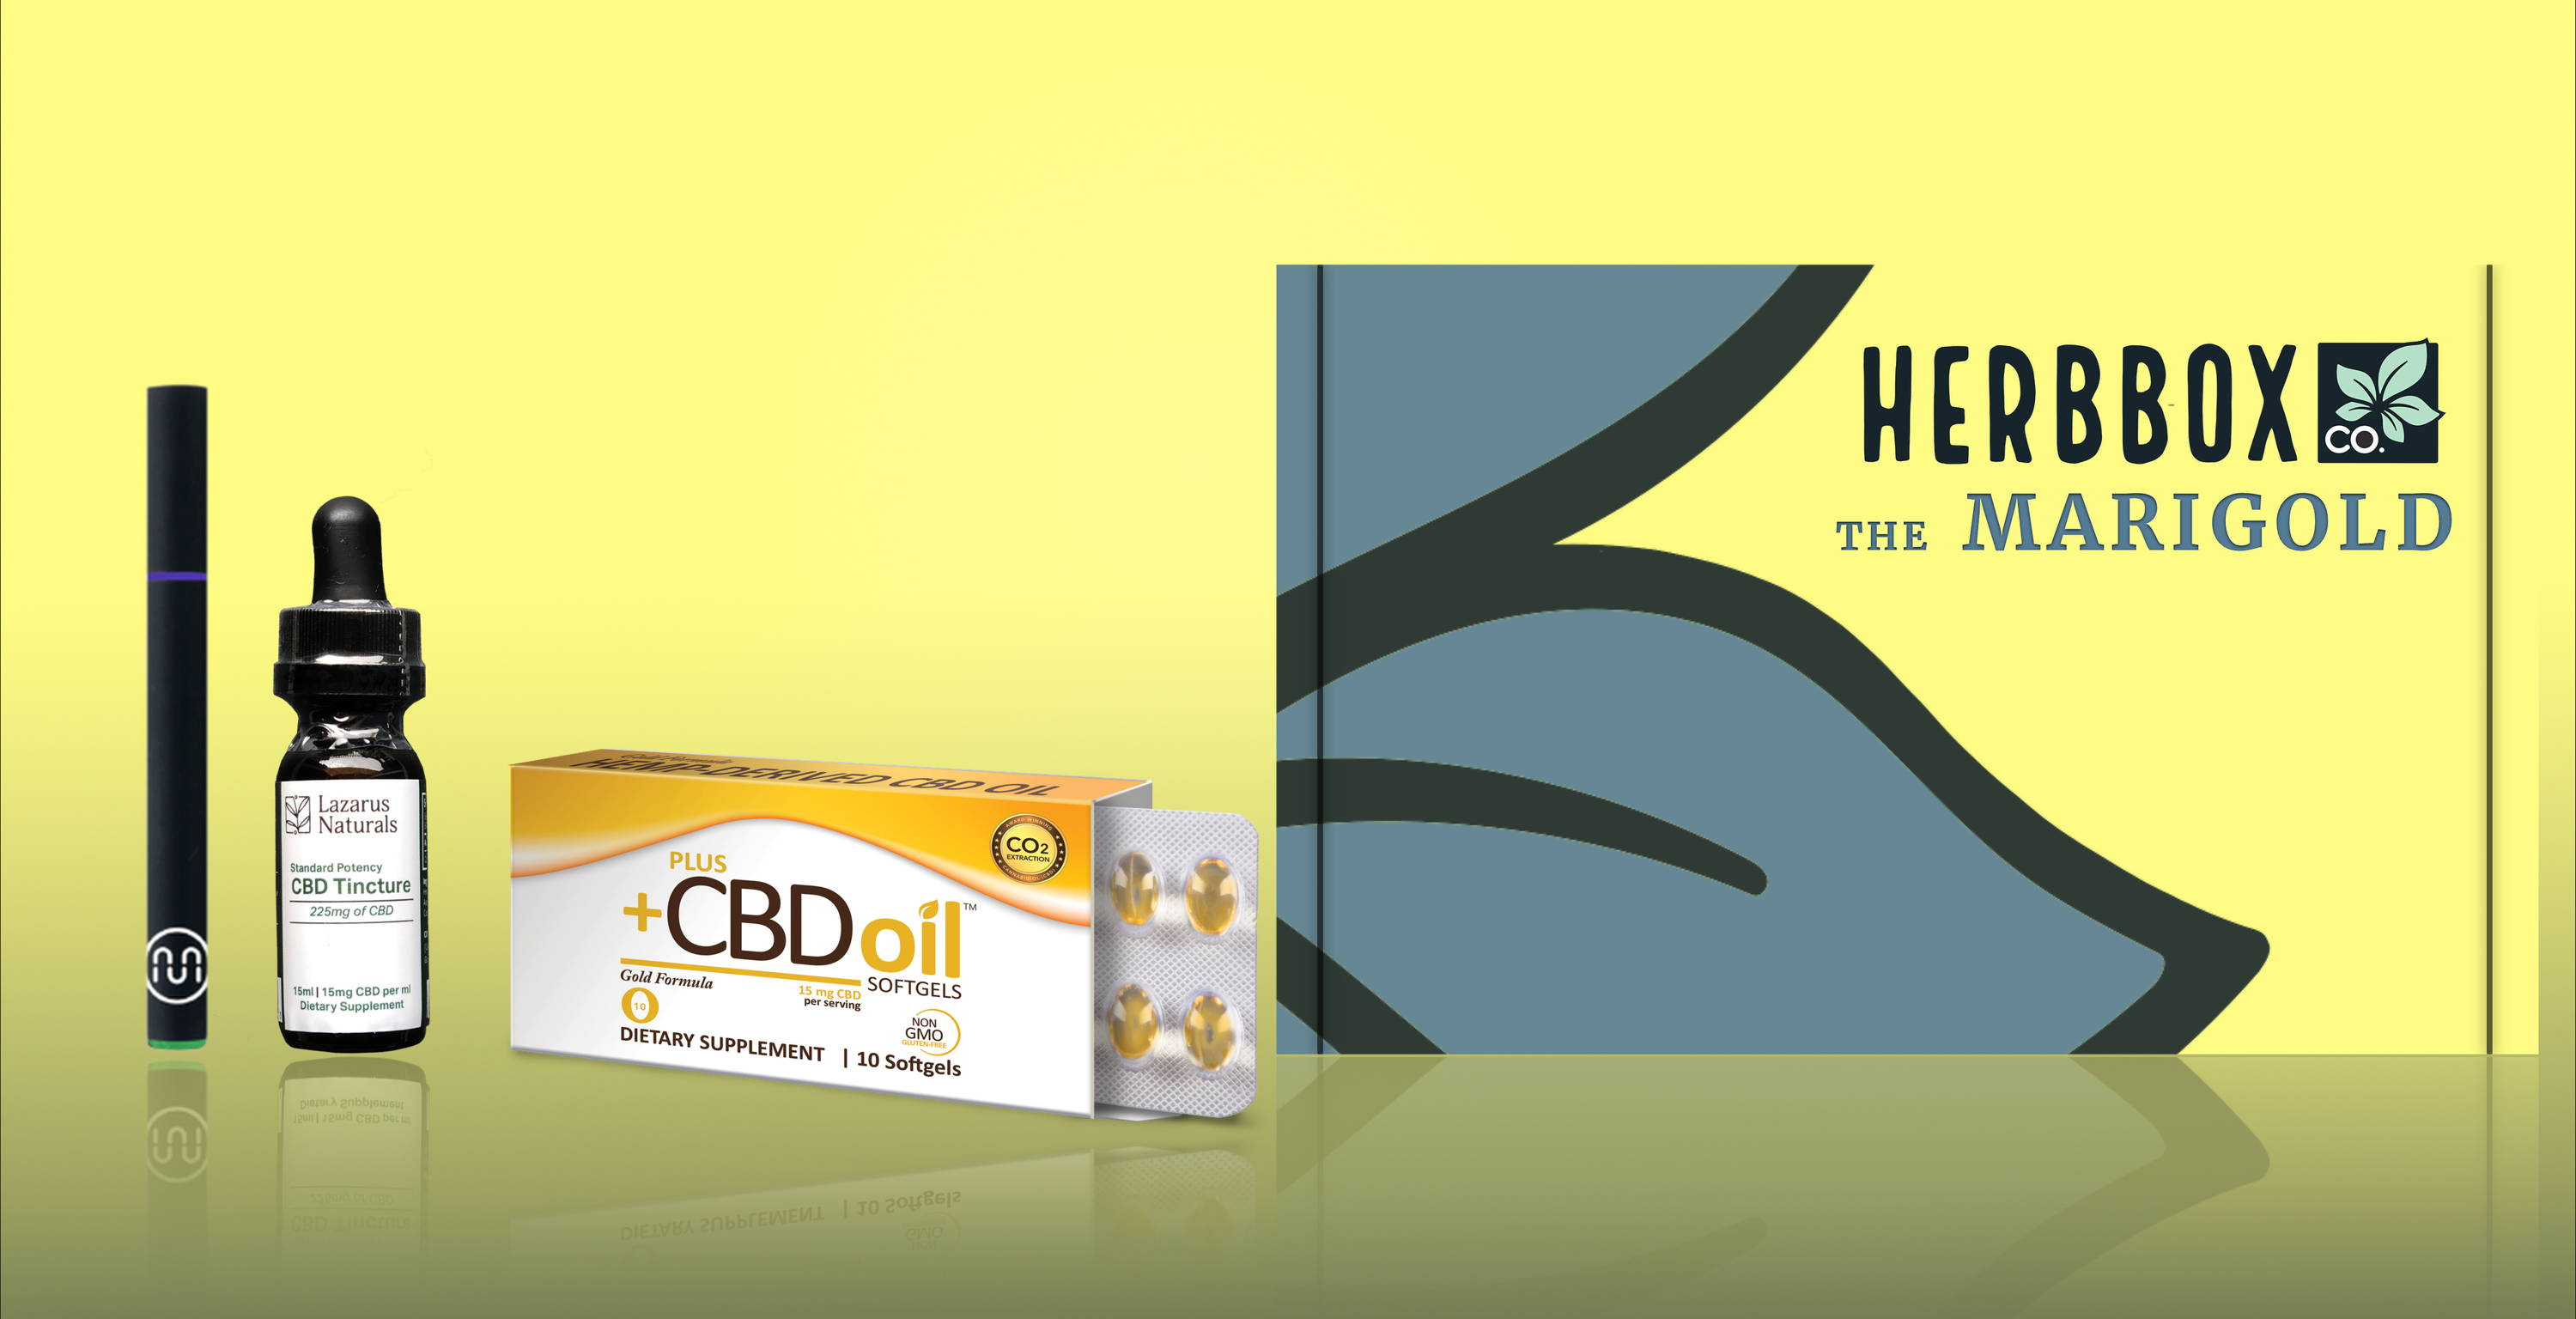 The Marigold - The Ultimate CBD Starter Pack